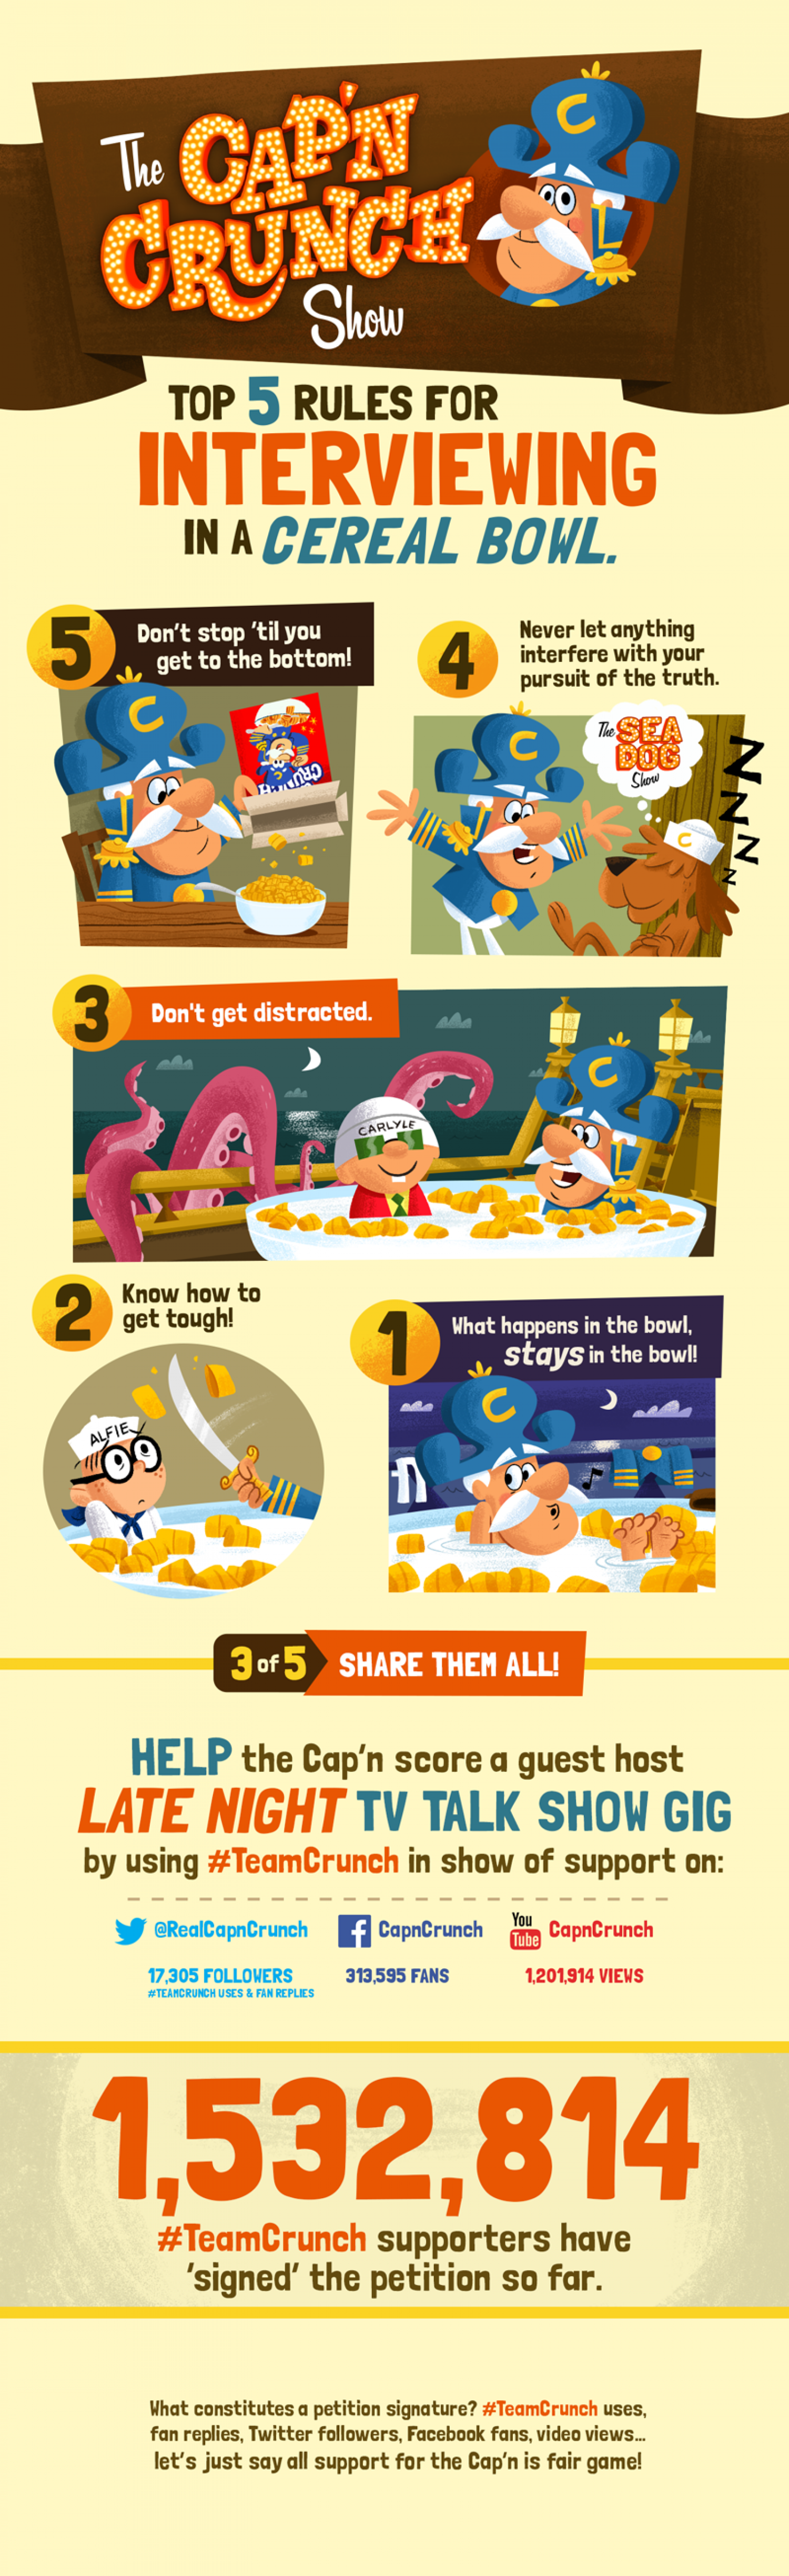 Top 5 Rules for Interviewing in a Cereal Bowl Infographic